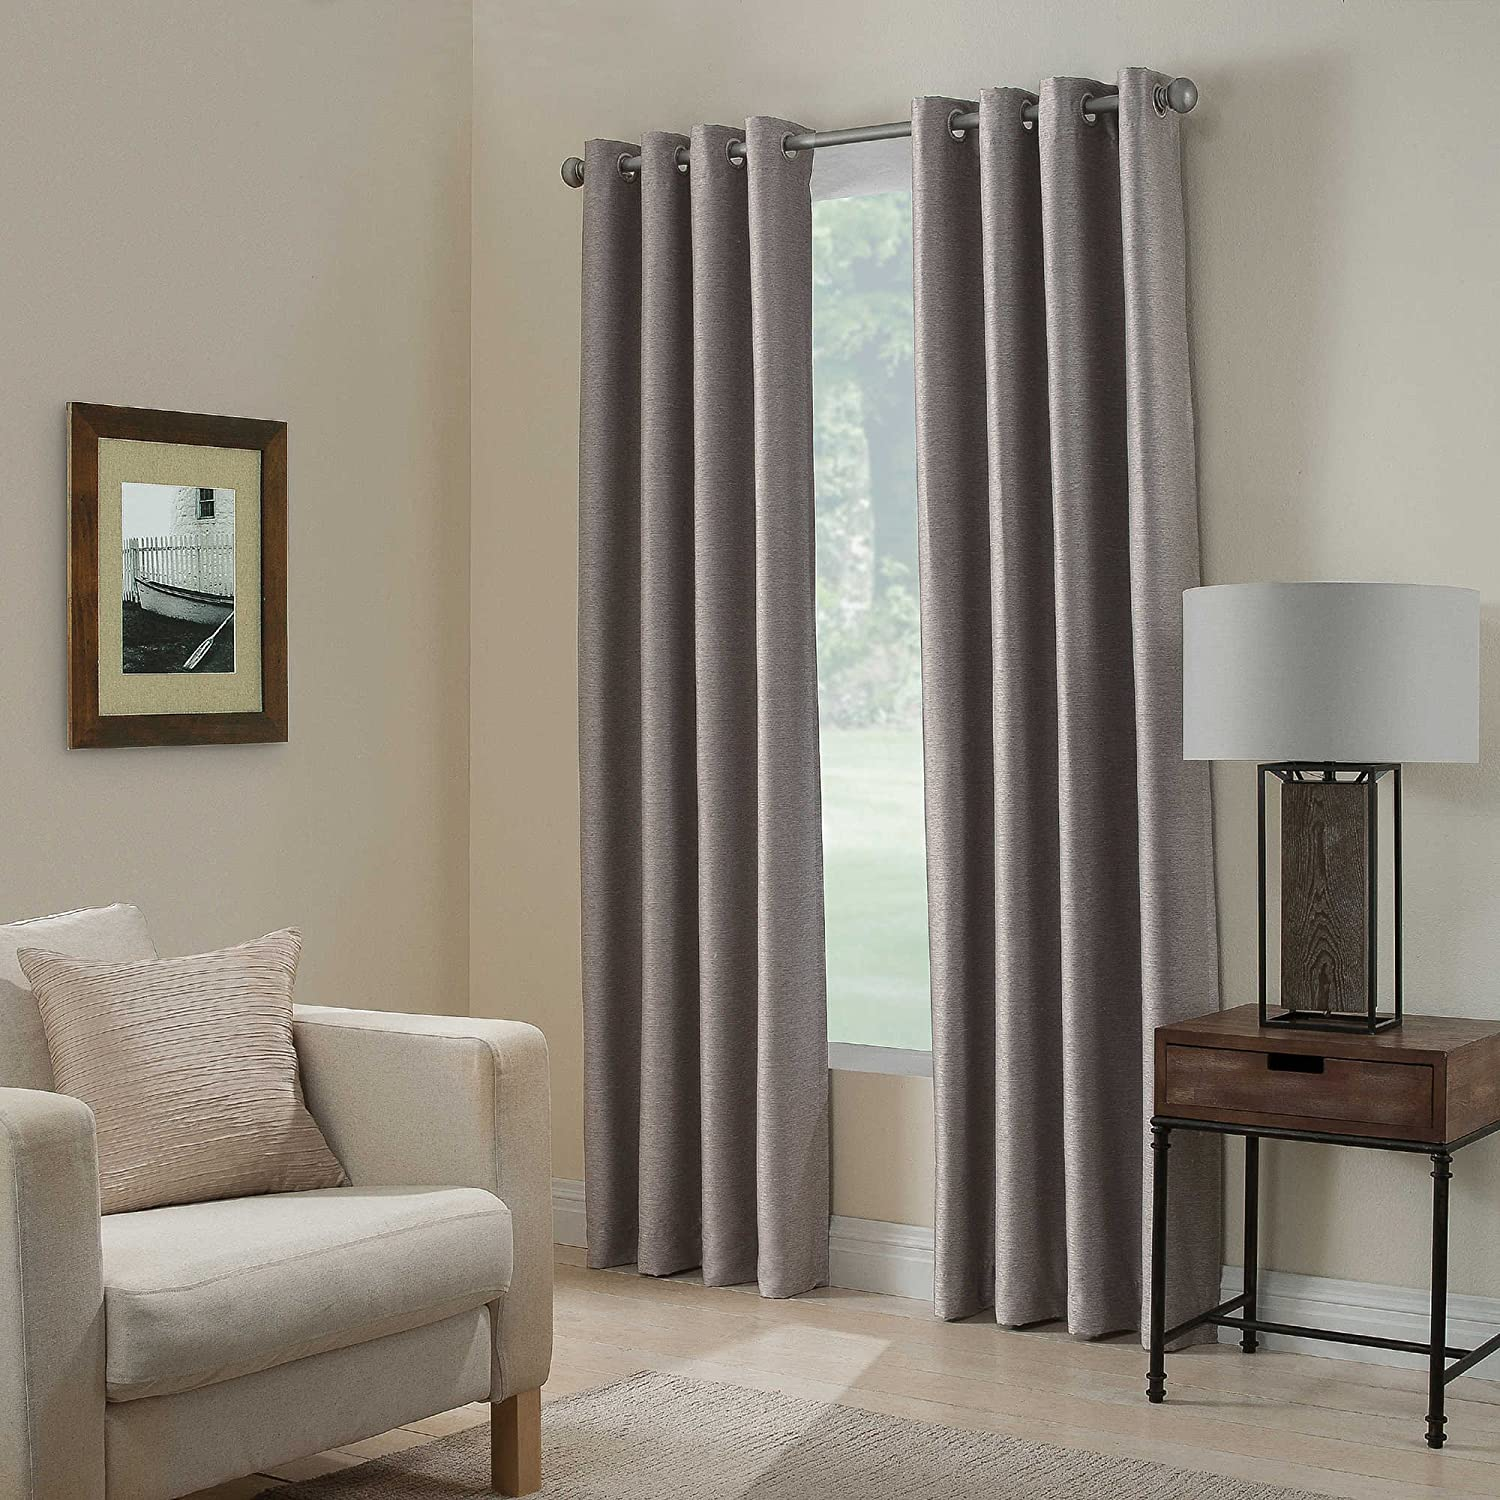 SILVER GRAY BLACKOUT HEAVY THICK WINDOW CURTAIN DRAPES BRONZE GROMMETS